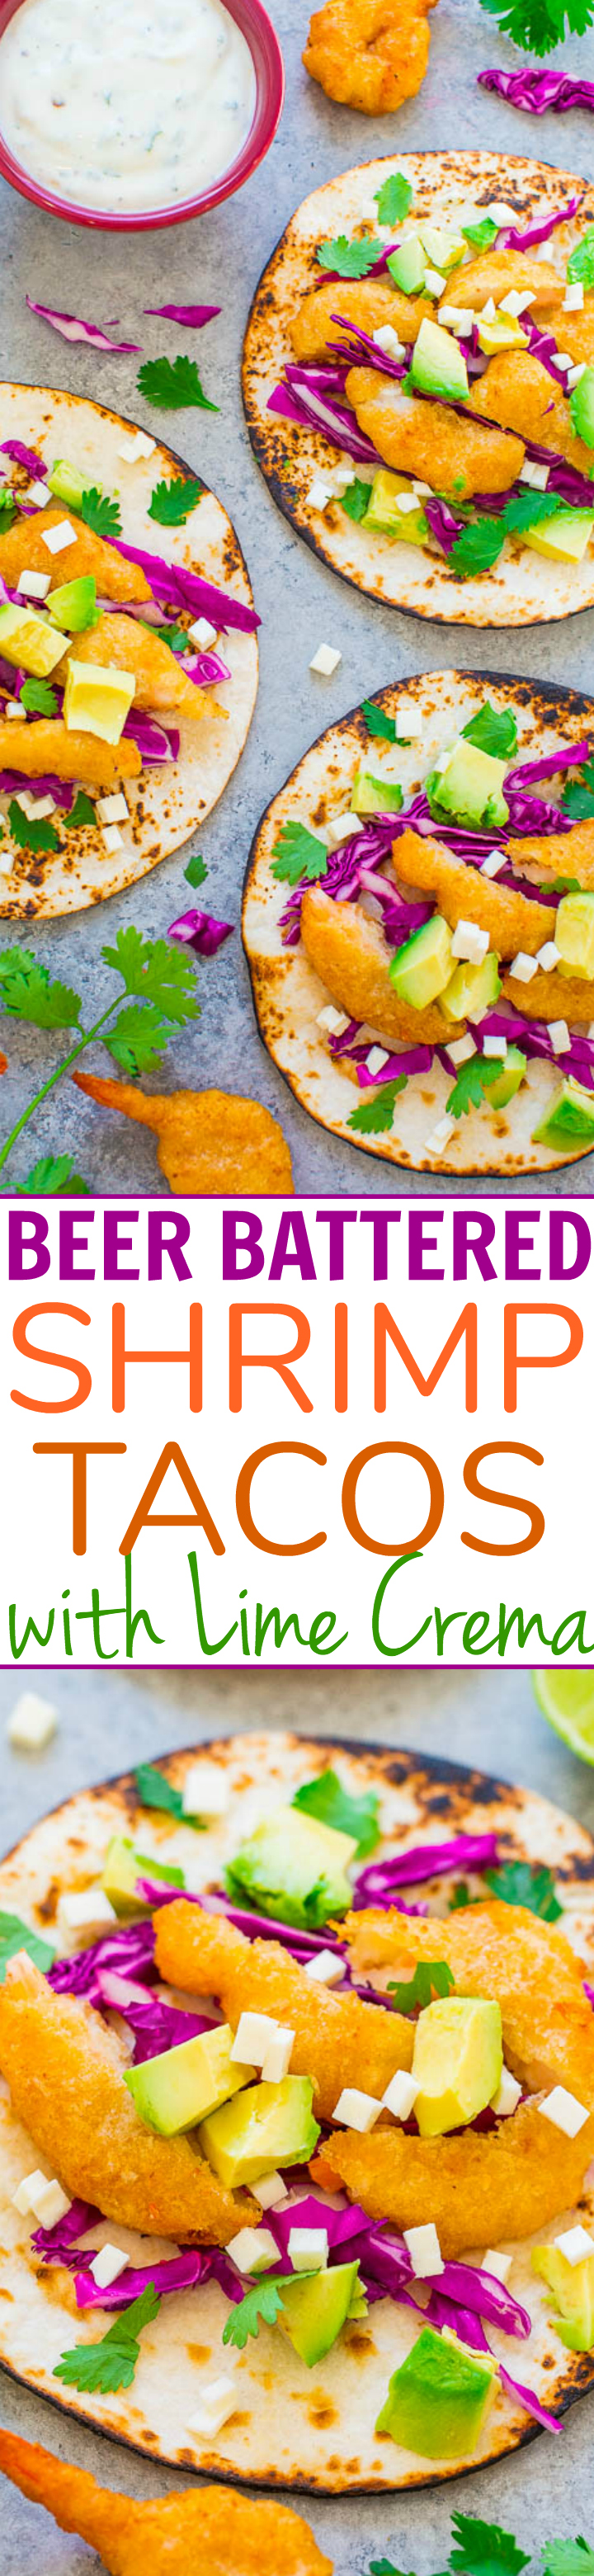 Beer Battered Shrimp Tacos with Lime Crema - Fast, EASY, restaurant-quality tacos at home!! Juicy beer-battered shrimp, avocado, cheese, and a zesty lime crema to top it off! Perfect for weeknight dinners and easy entertaining!!